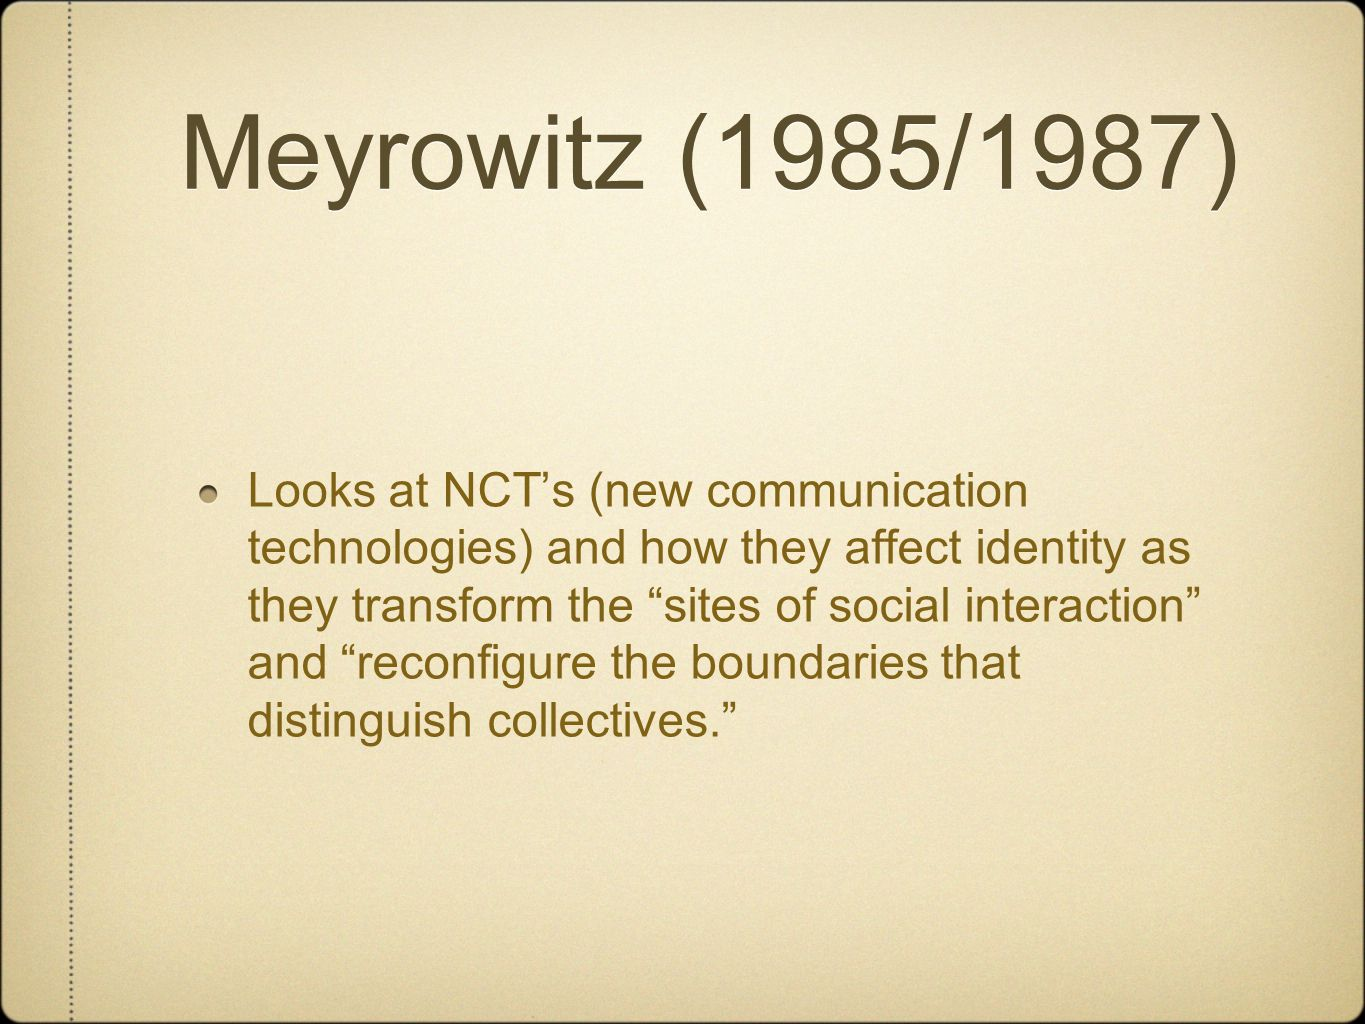 Meyrowitz (1985/1987) Looks at NCT's (new communication technologies) and how they affect identity as they transform the sites of social interaction and reconfigure the boundaries that distinguish collectives.